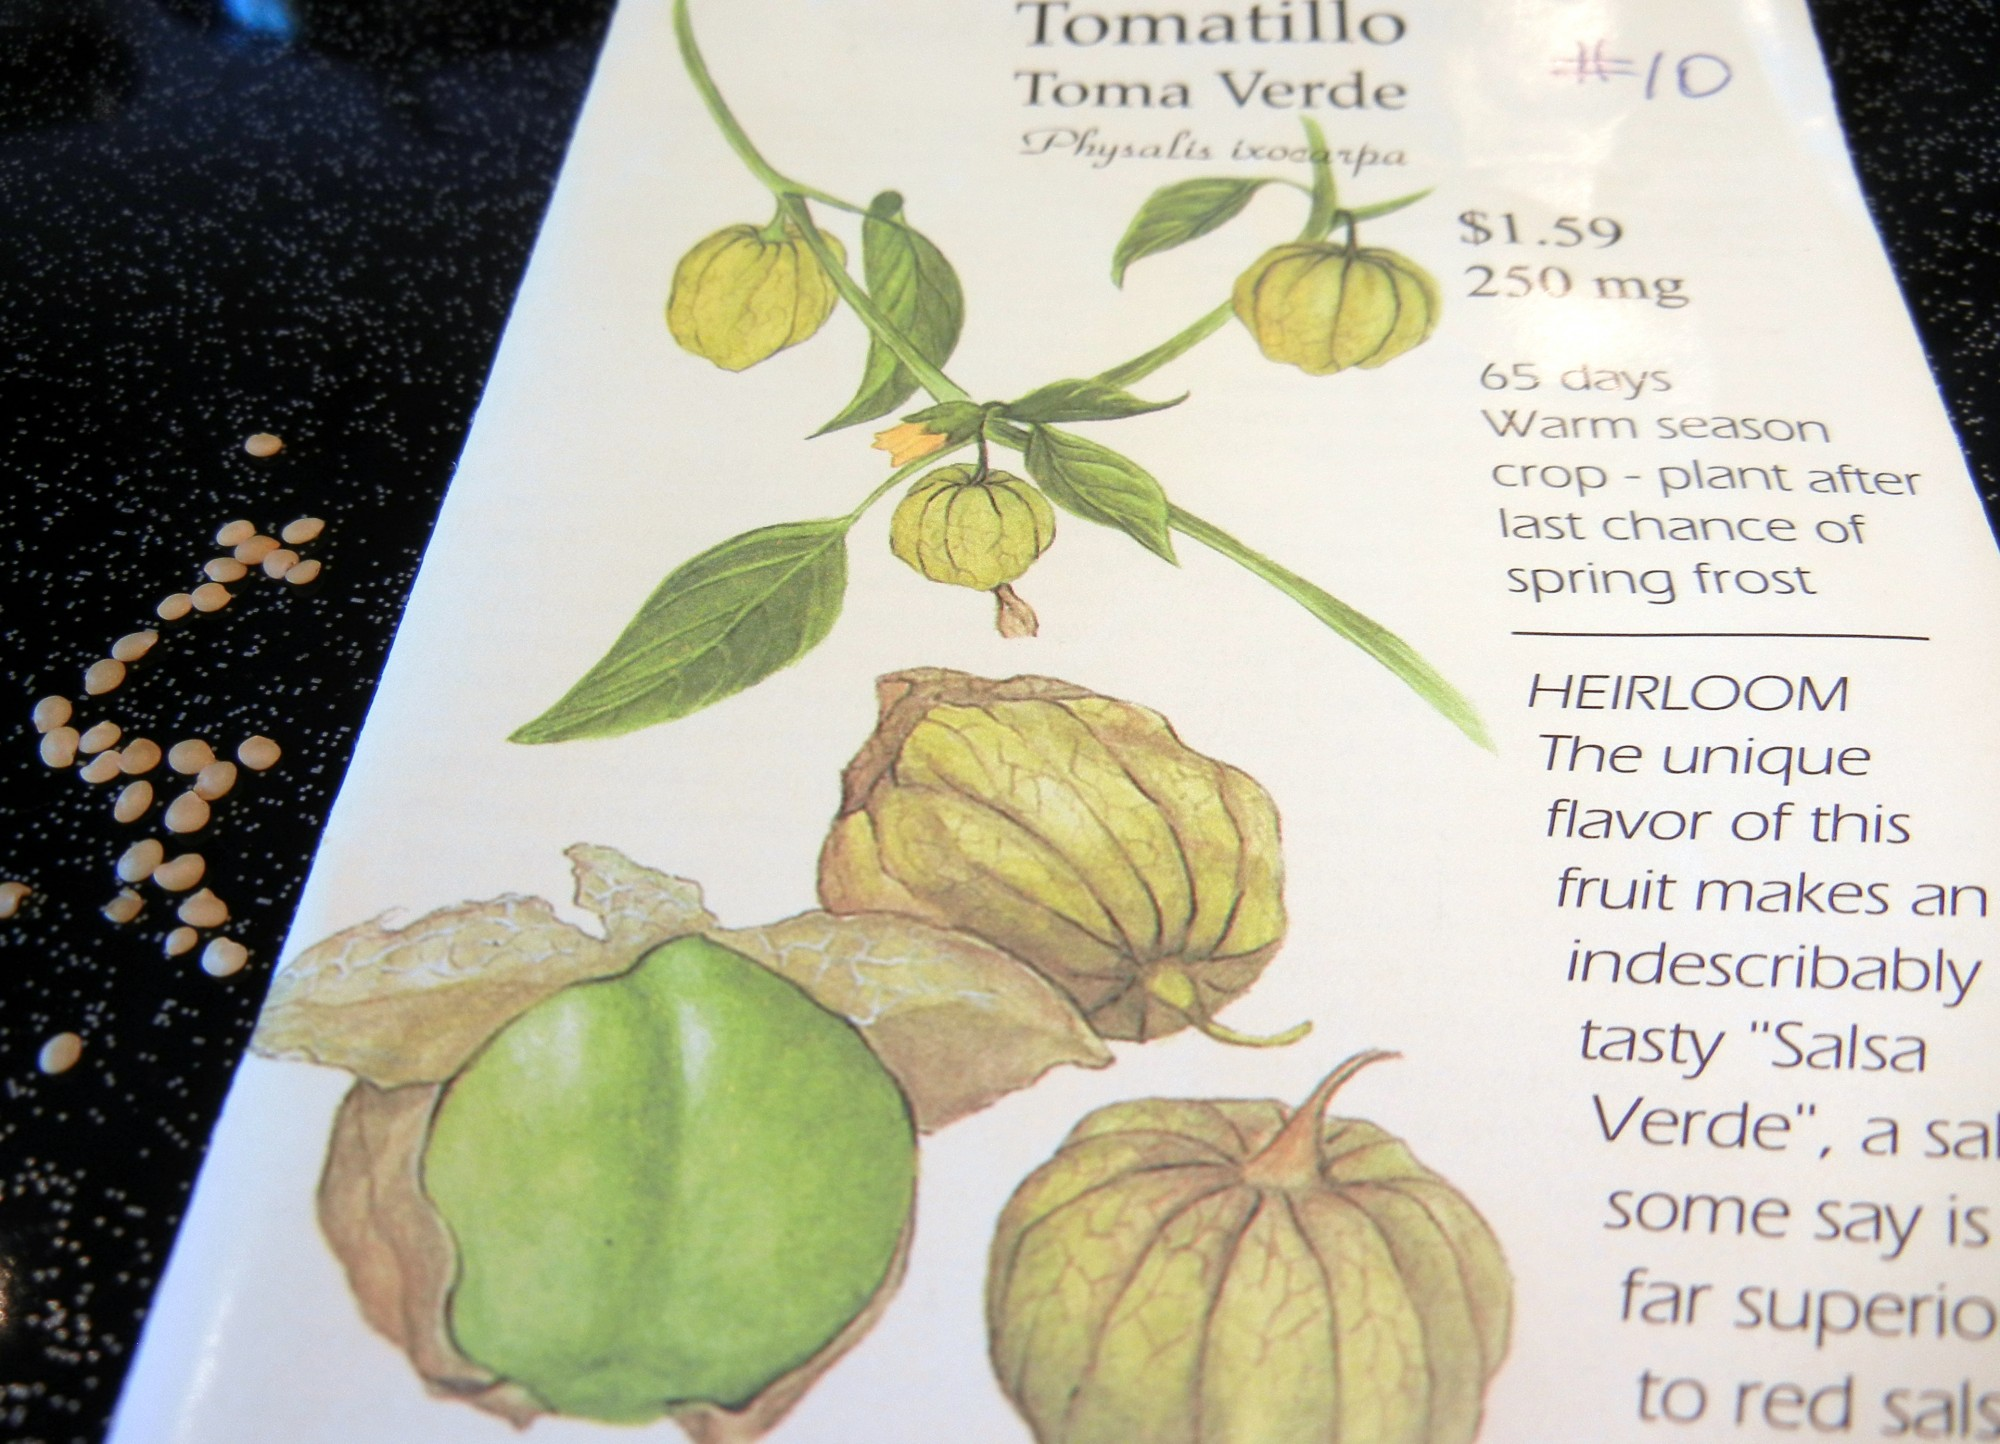 Tomatillos ~ A Salsa Verde Must!, Mexican cuisine, small green fruit, green salsa recipe, roasted tomatillo recipe, ingredients, directions, garden, planting, all about tomatillos, chilled sauce, green sauce, condiment, zesty, paper husks, Latin American green sauces, sweet-sour, searing, piquante,Seeds are reddish and very much like tomato seeds. Heirloom.